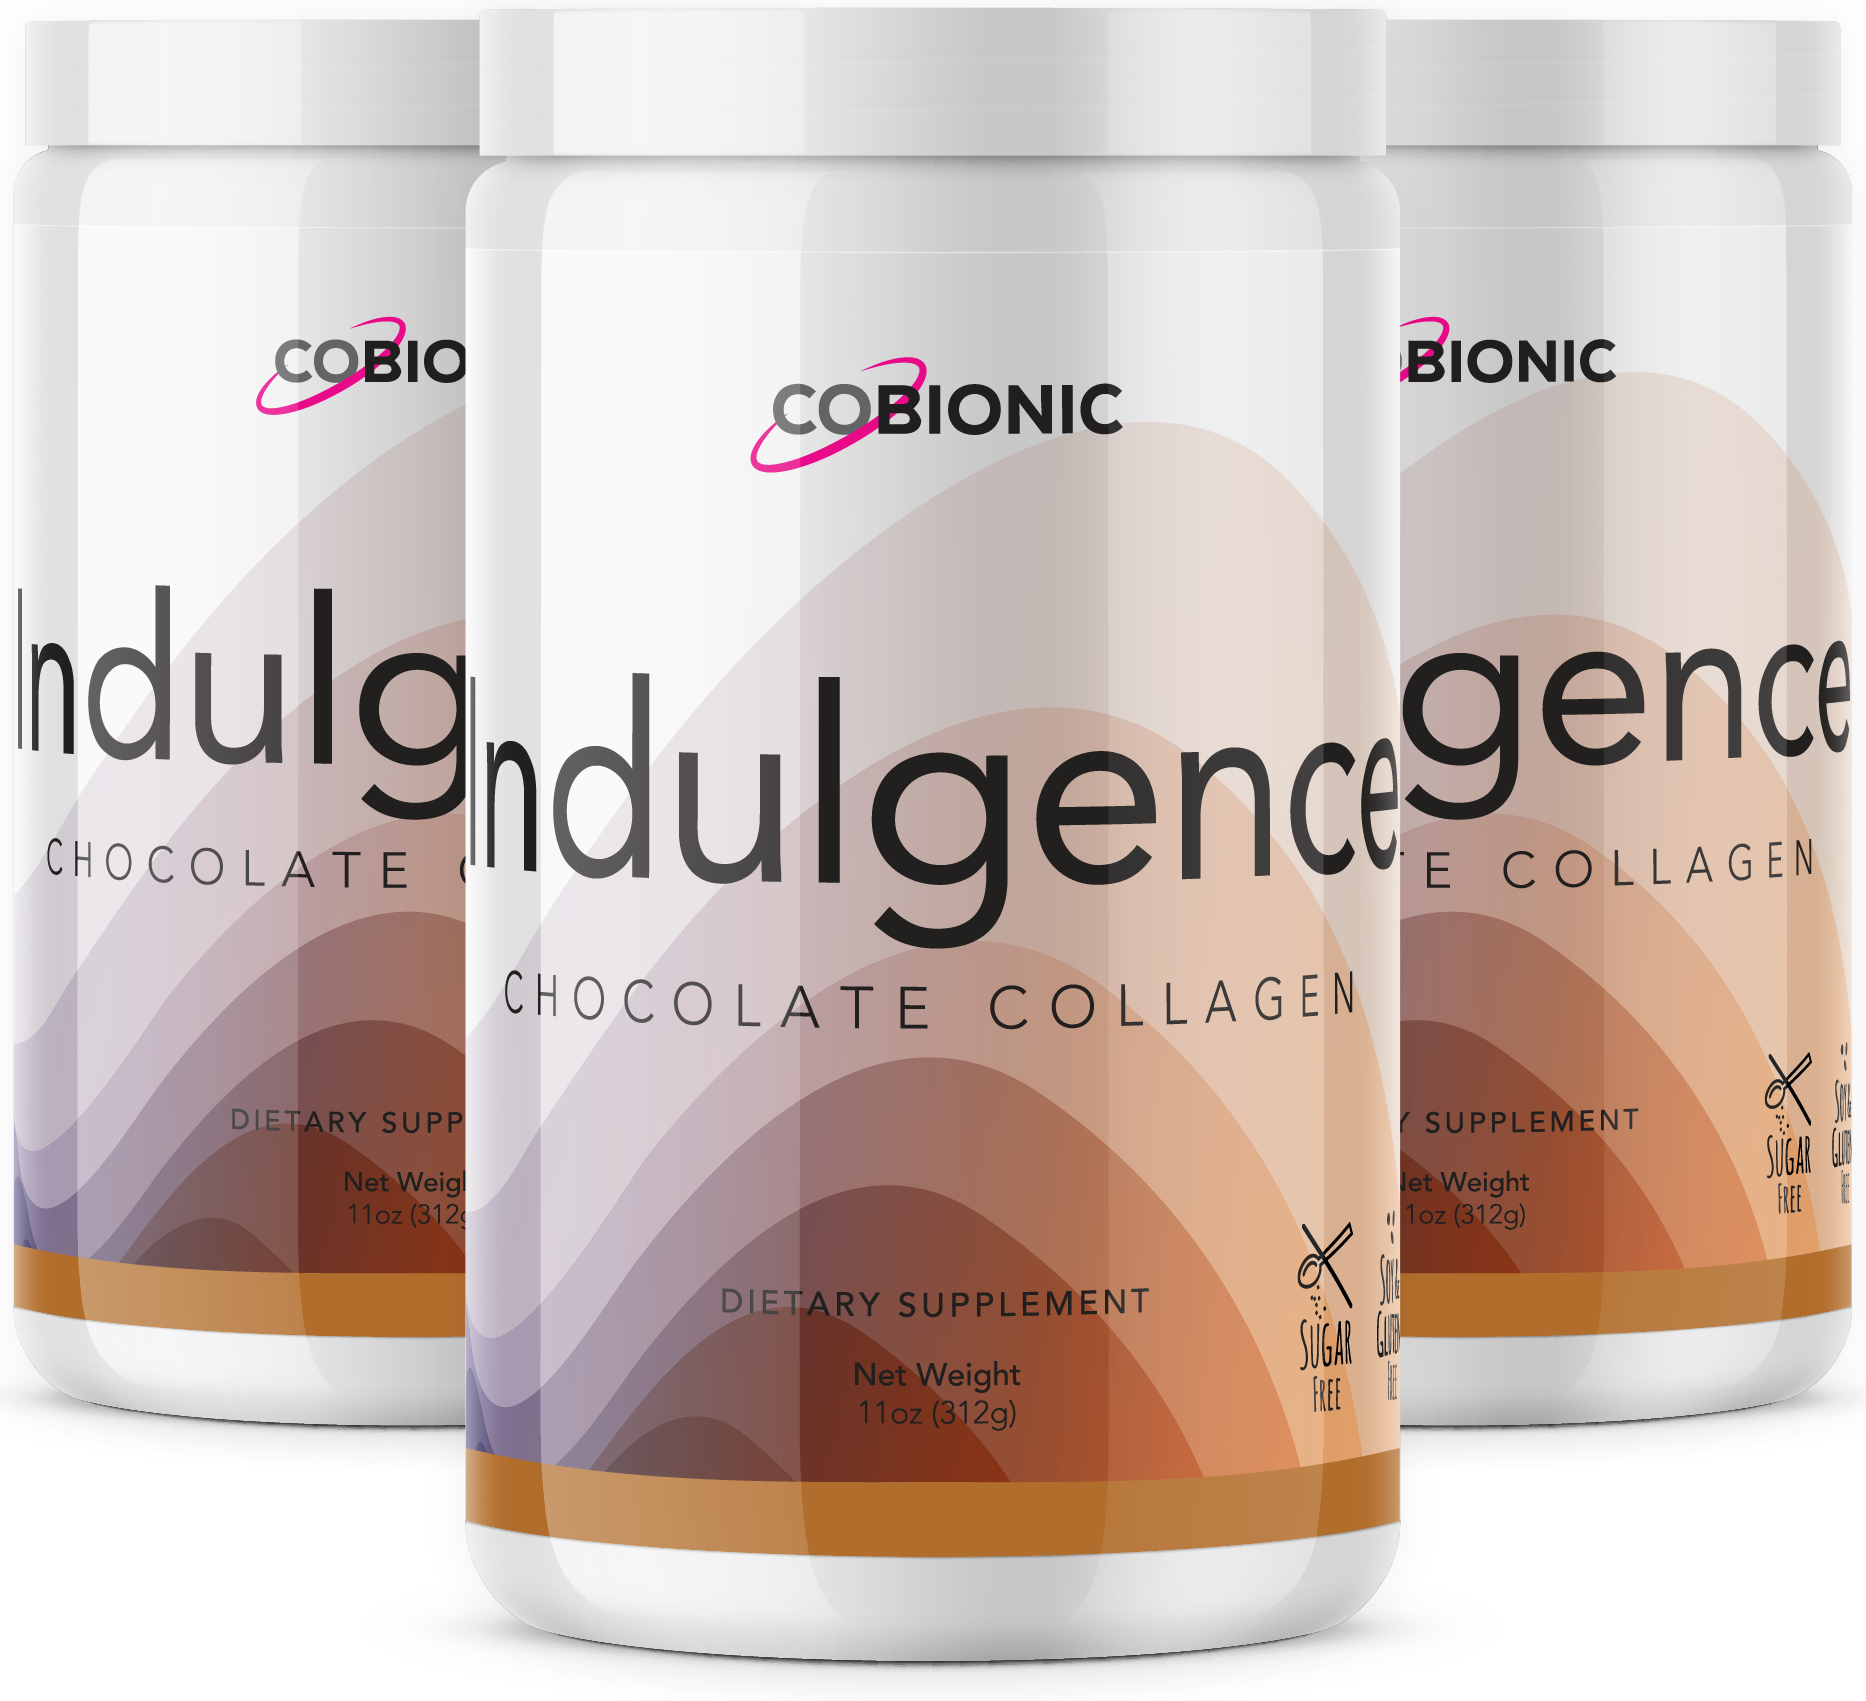 Introducing Indulgence...A Delicious Chocolate Treat That Rejuvenates Skin and Hair